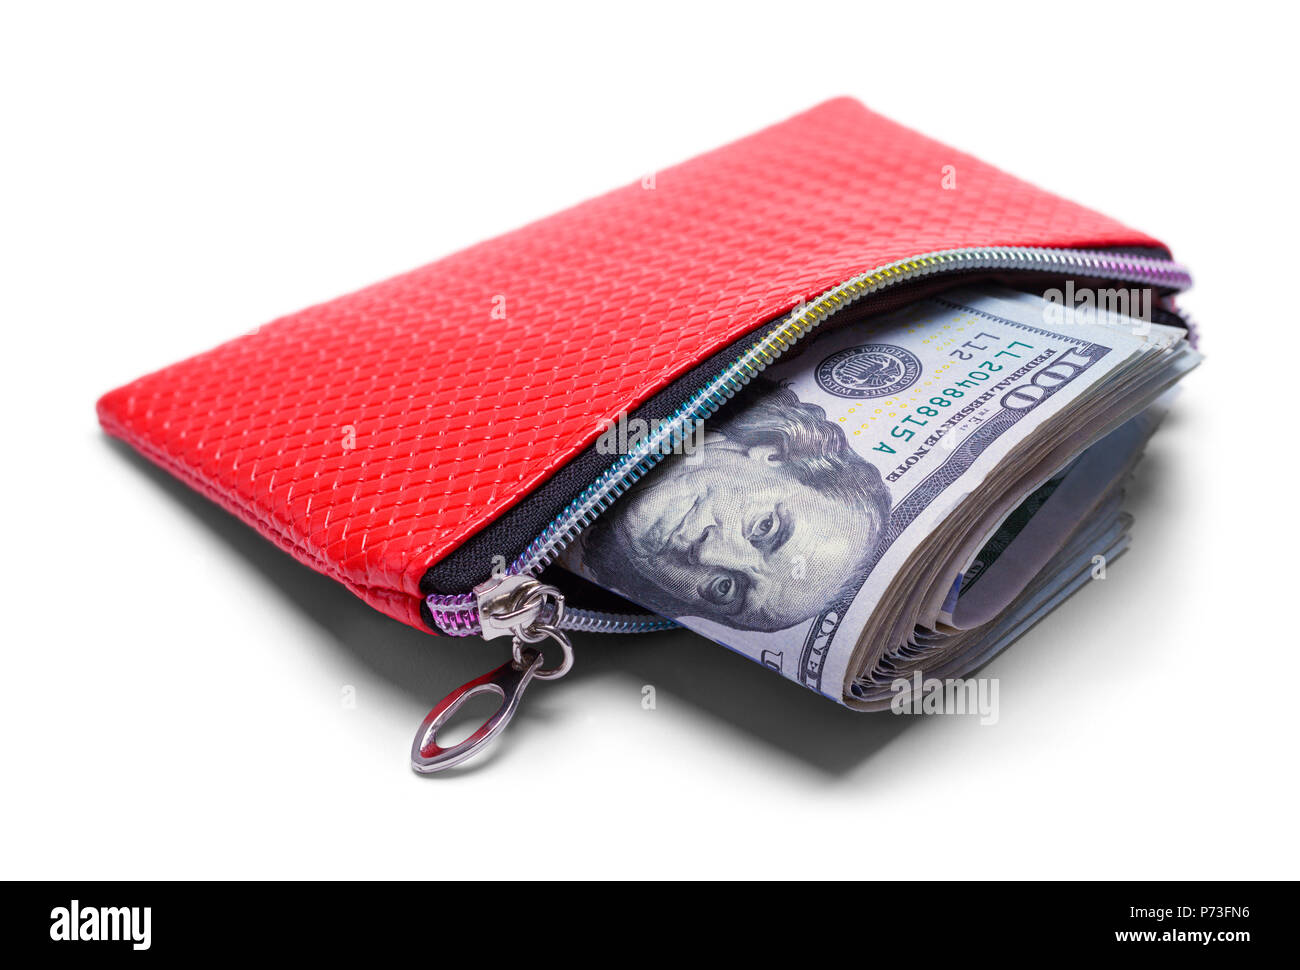 Red Wallet Full of Money Isolated on a White Background. - Stock Image